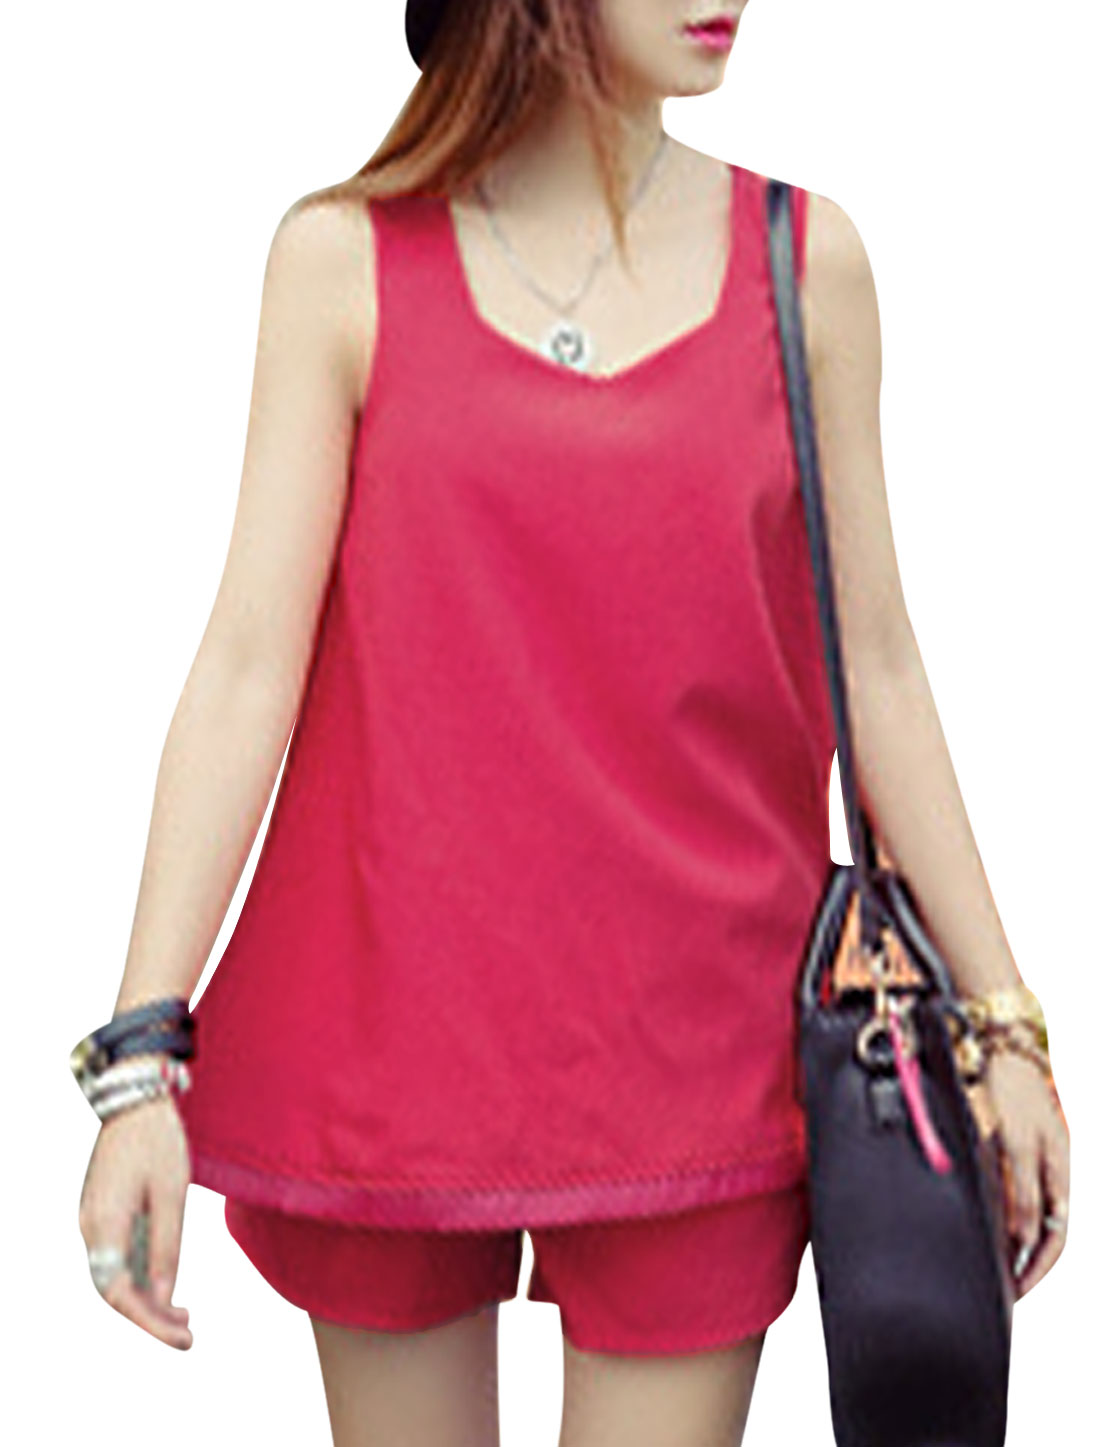 Ladies Square Neck Sleeveless Top w Zip Up Shorts Fuchsia XS